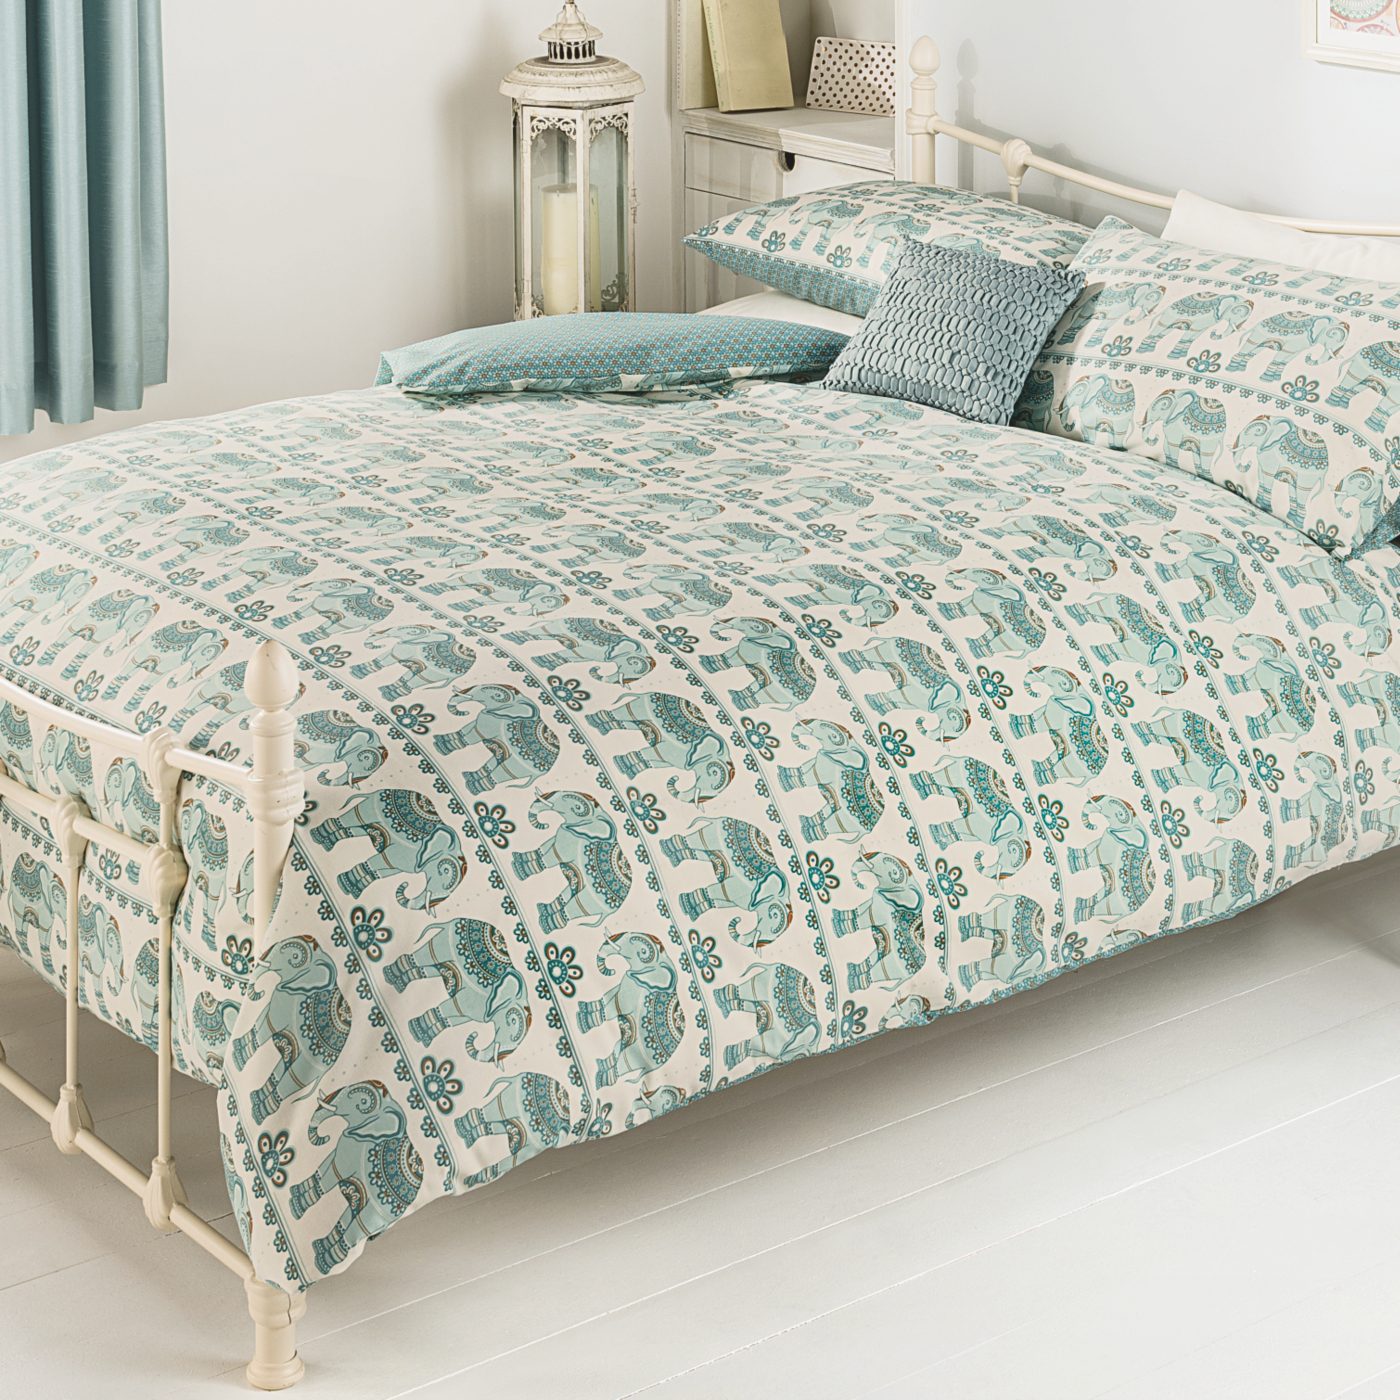 A double duvet cover is approximately 78 inches long by 78 inches wide. Single duvet covers are not quite as wide as the double duvet covers, spanning a width of about 60 inches. King size duvet covers are available that are 86 inches wide by 94 inches long. Duvet covers are designed to fit over duvets.